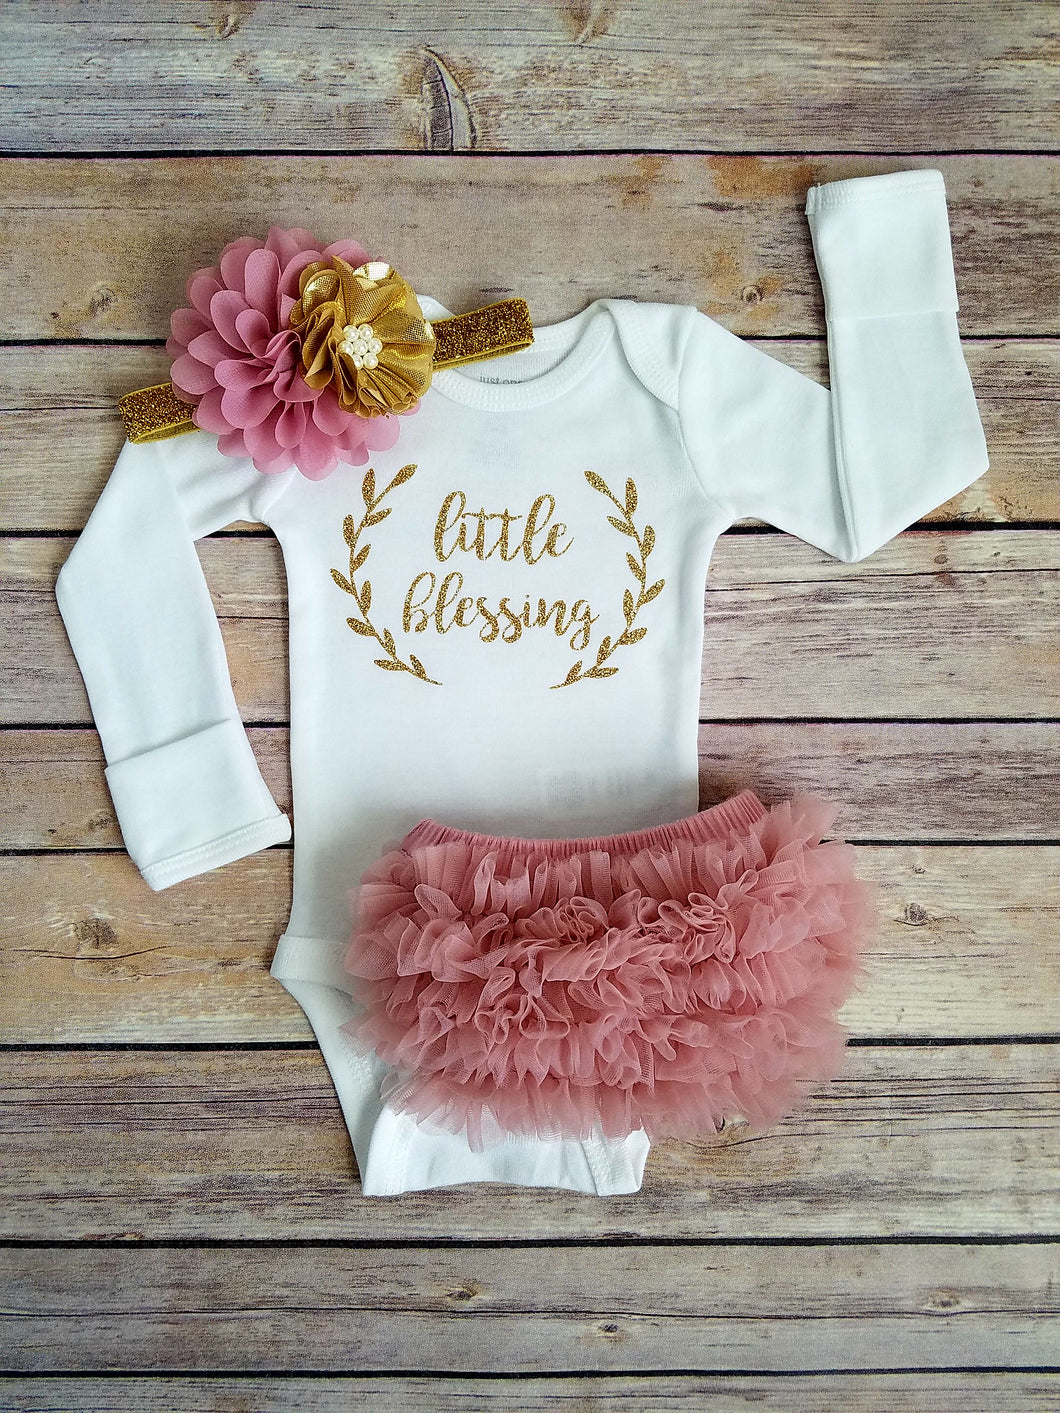 Dusty Pink And Gold Little Blessing Newborn Outfit Coming Home Outfit Girl Pearl Flower - Adassa Rose